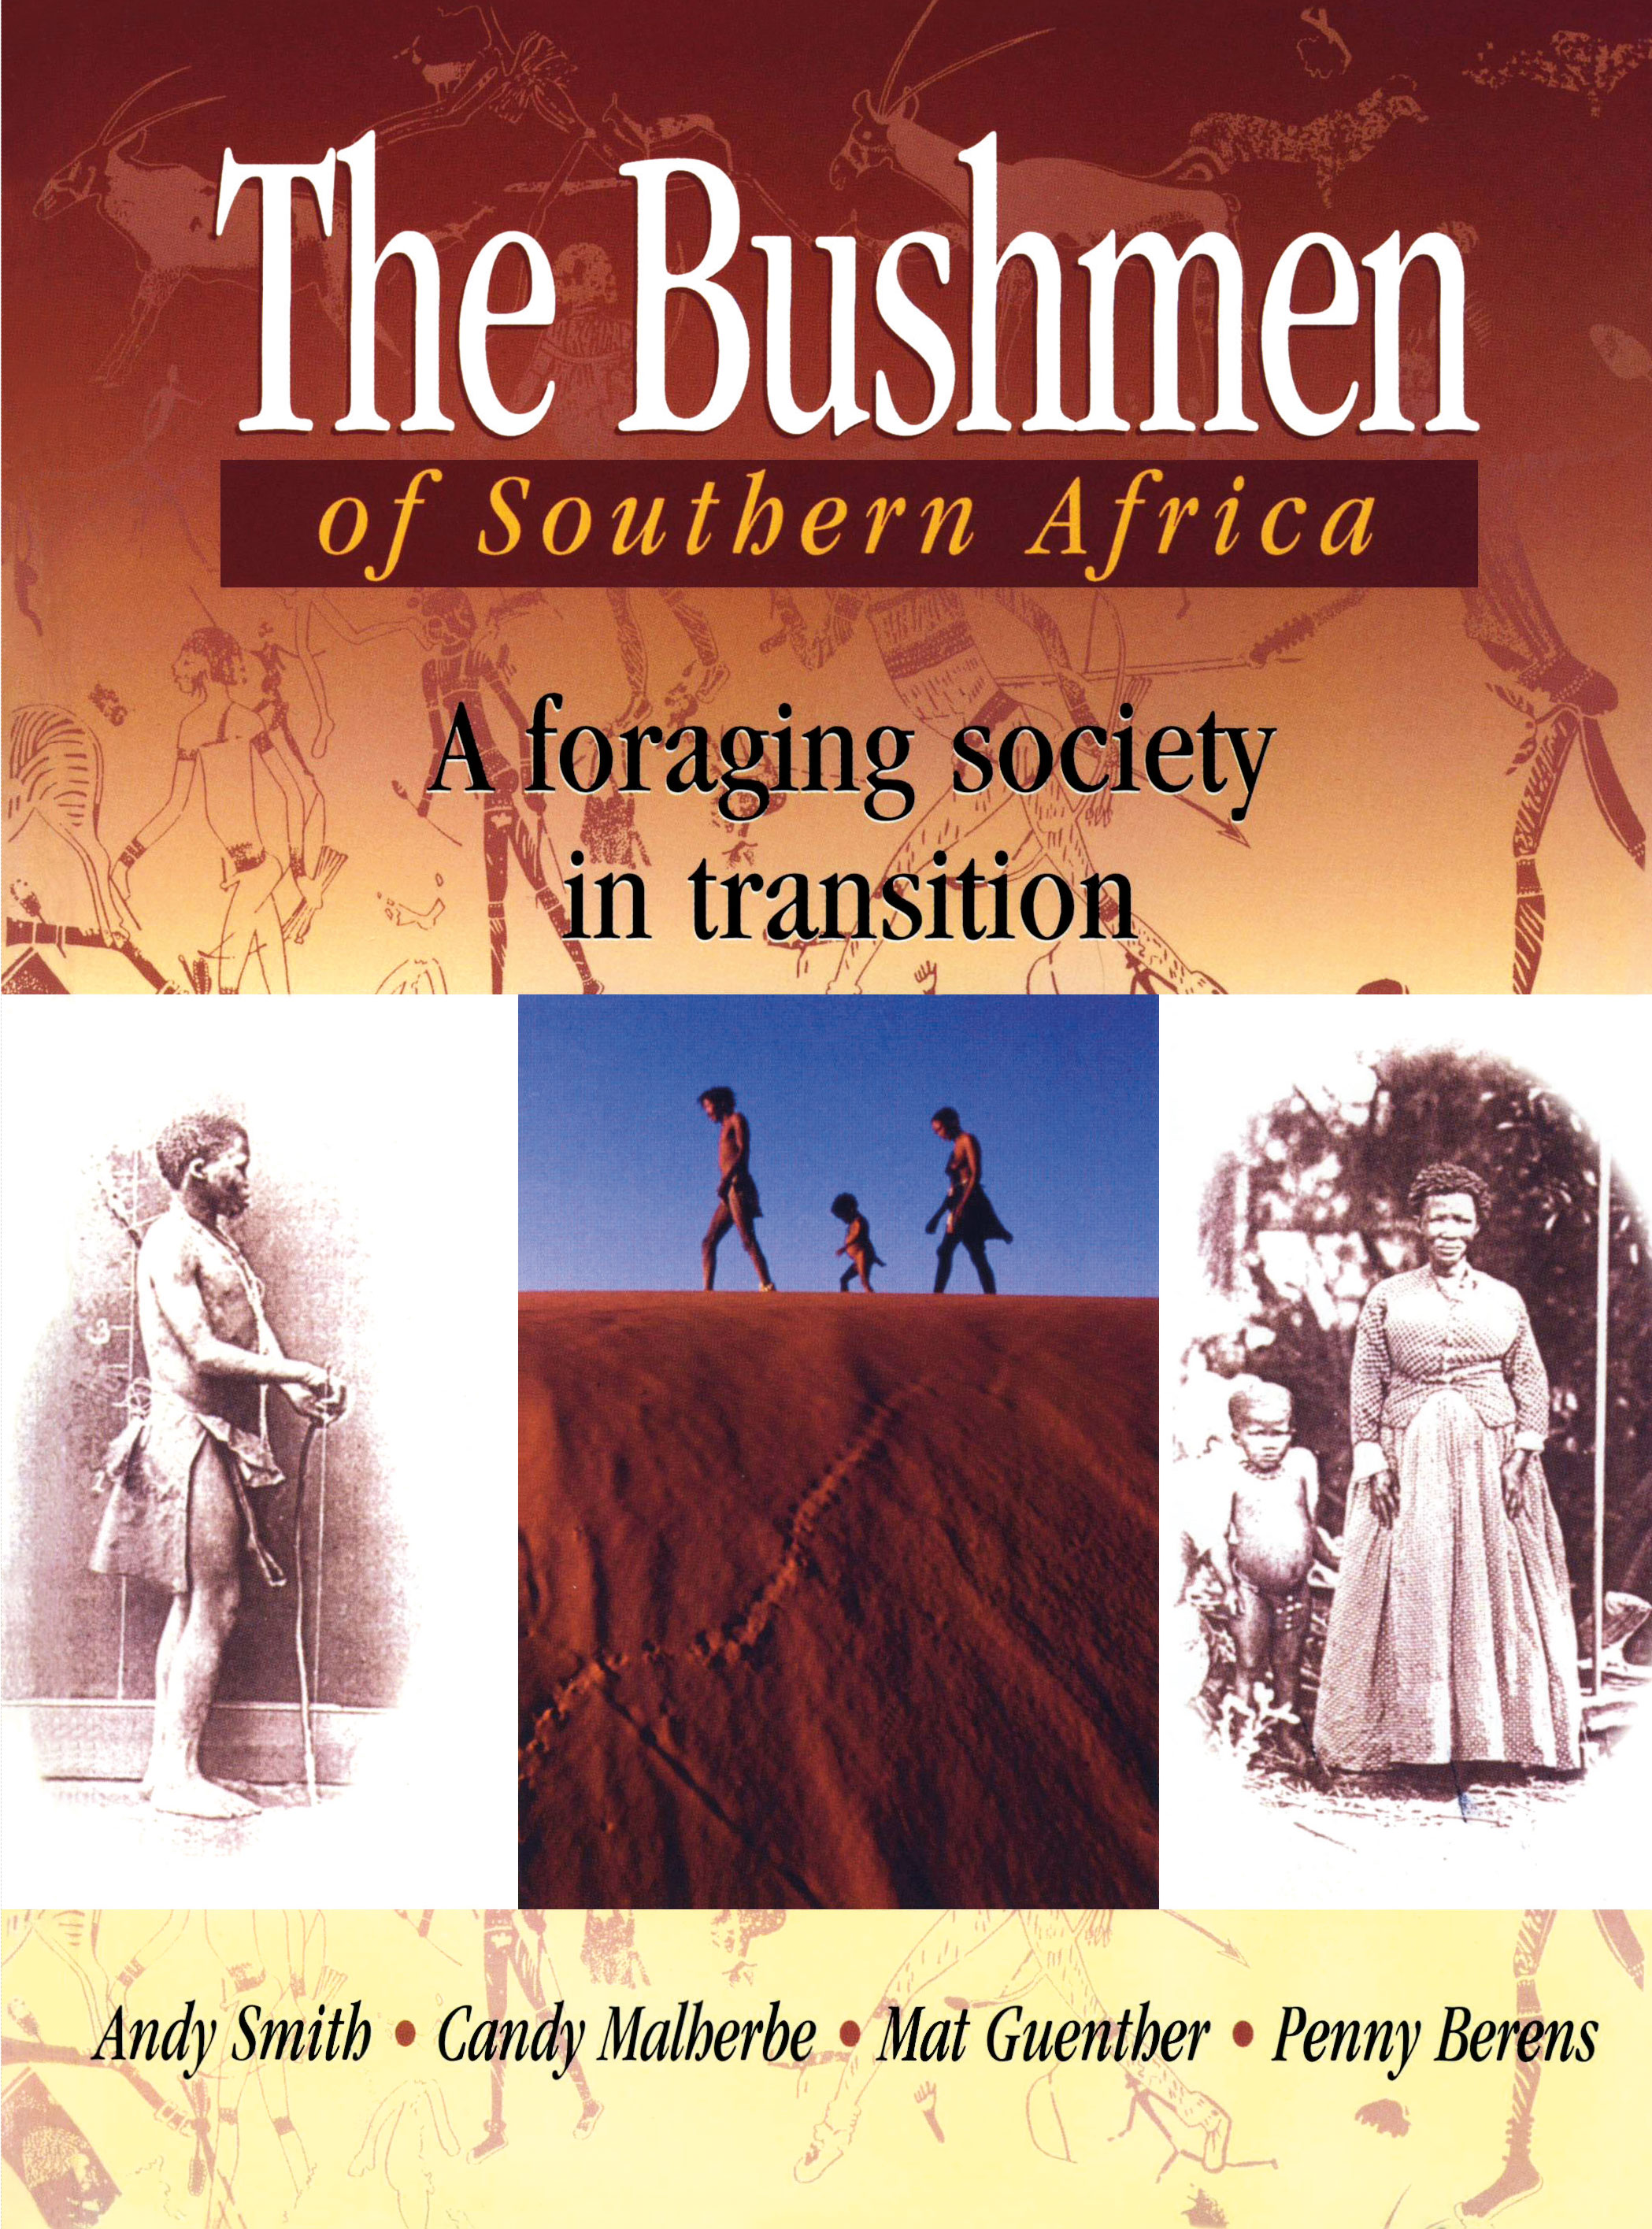 The Bushmen of Southern Africa - Andy Smith, Candy Malherbe, Mat Guenther & Penny Berens